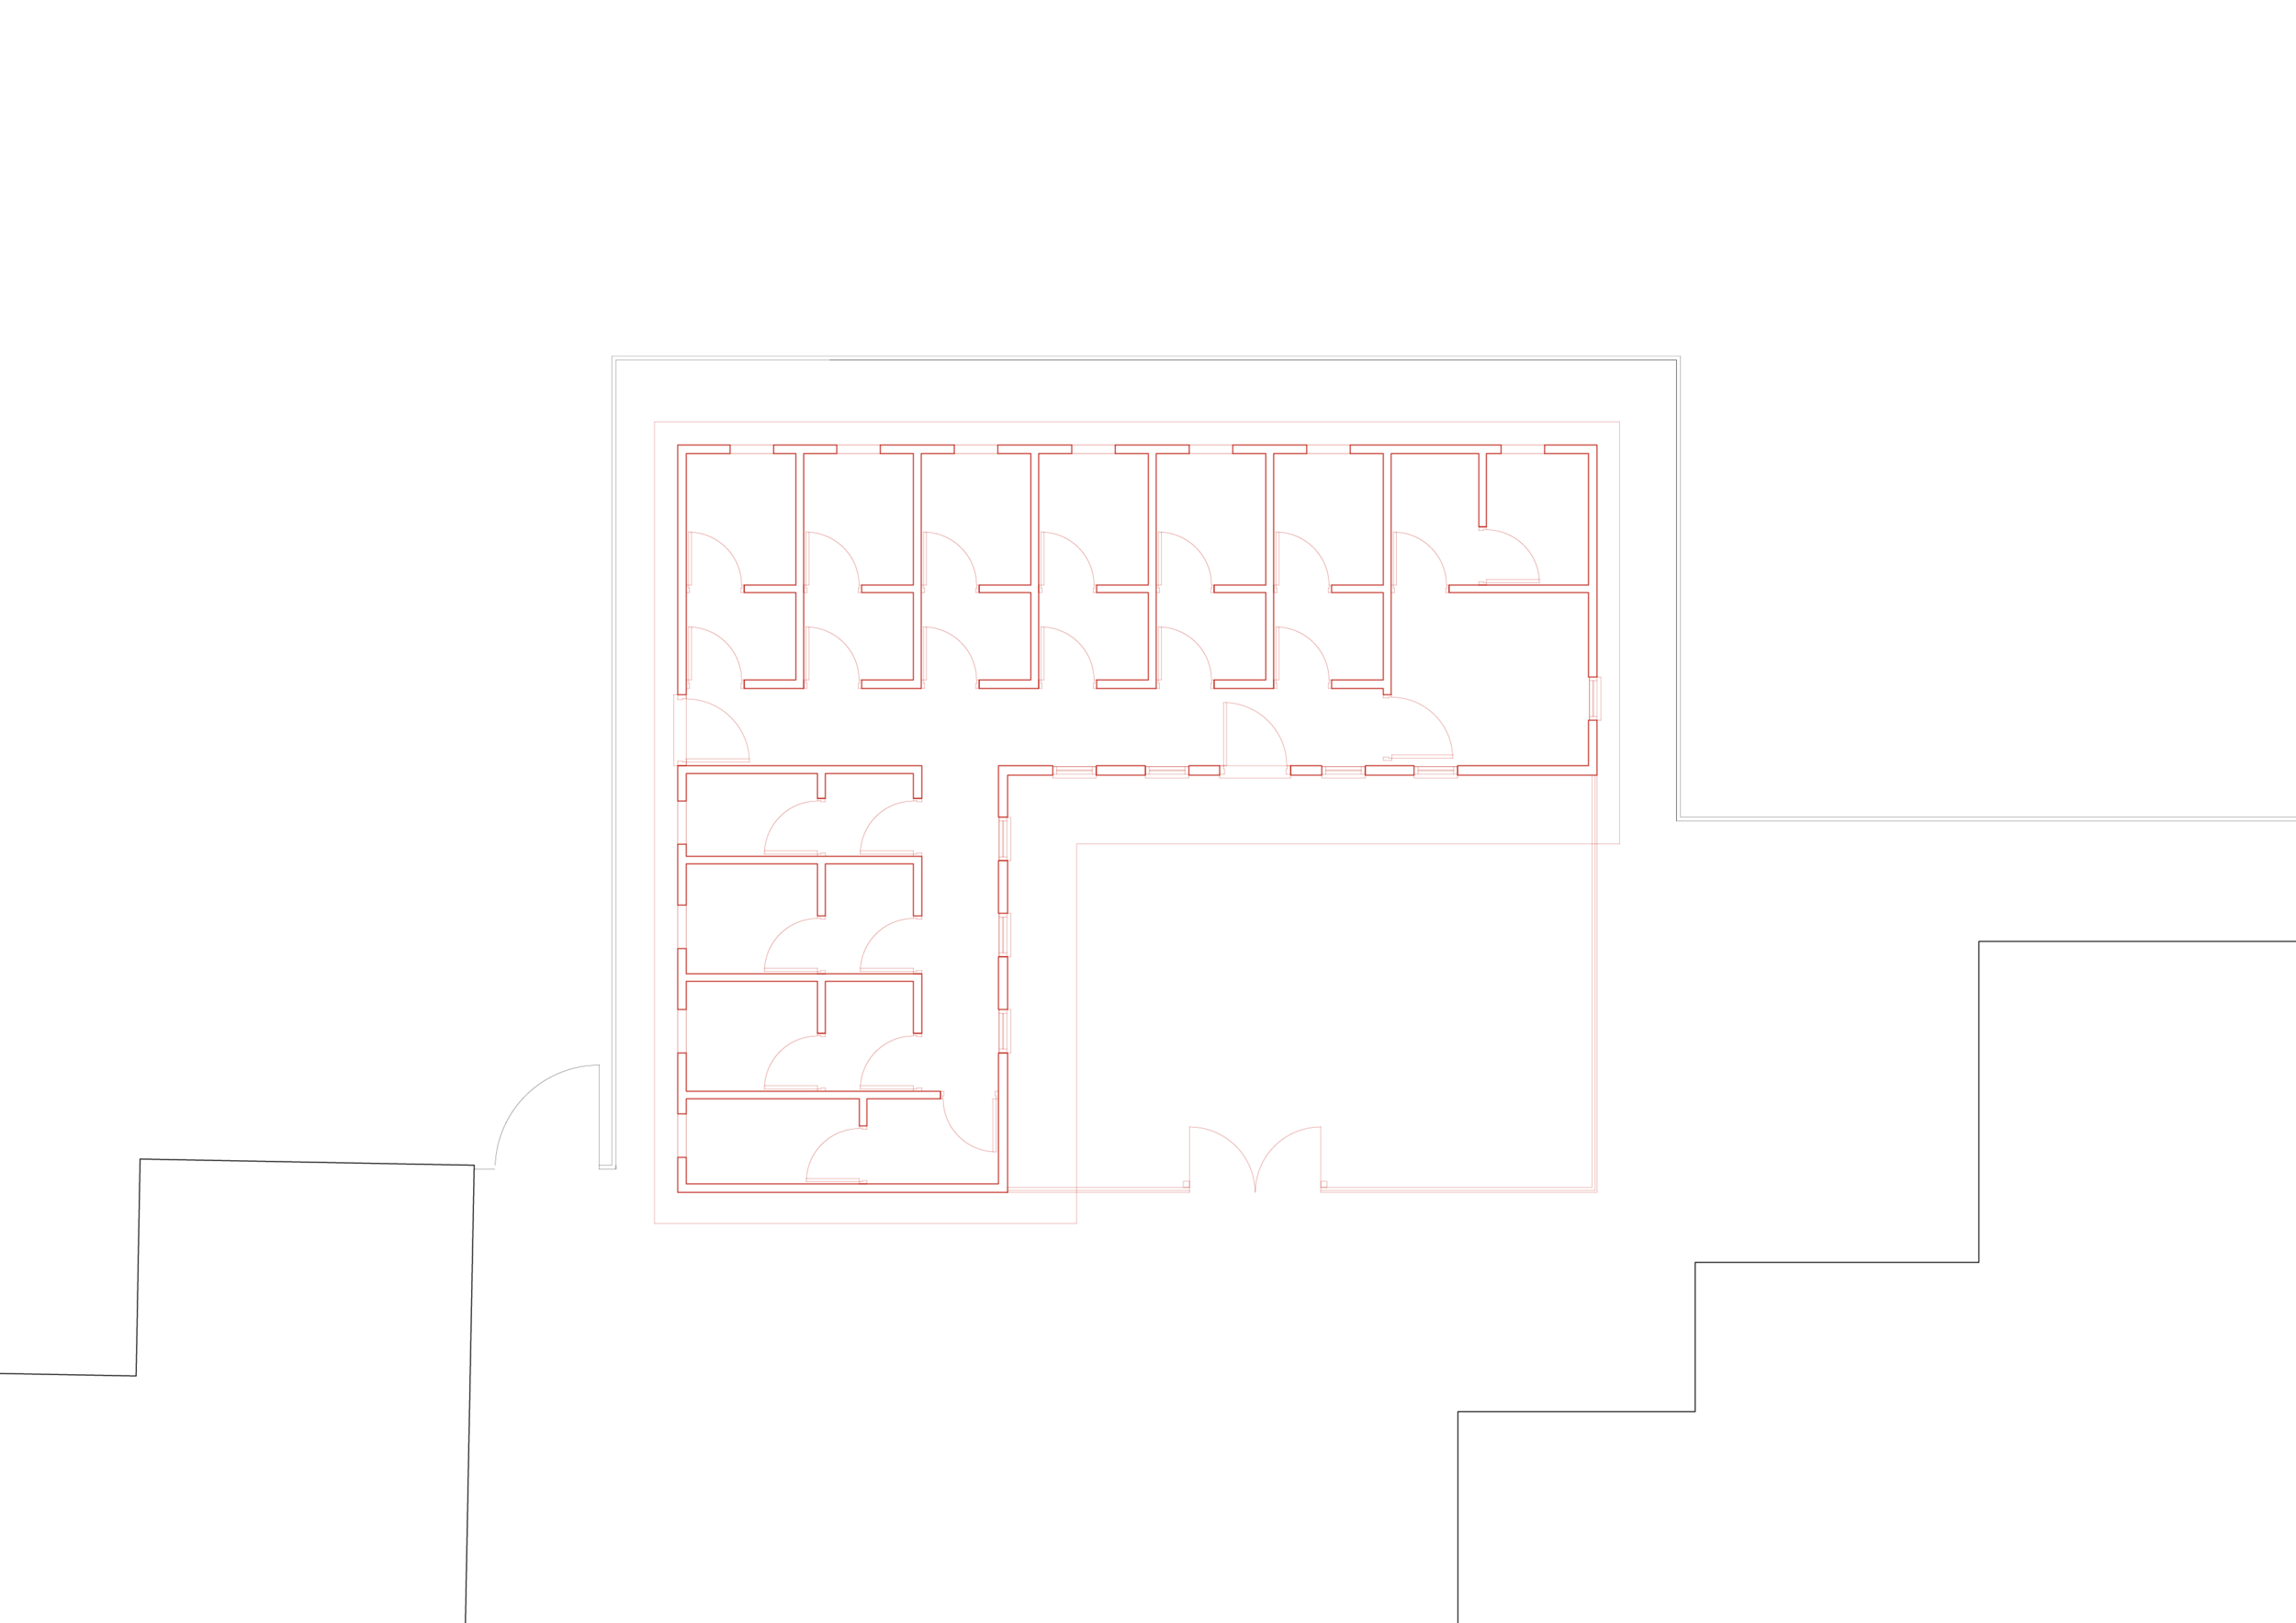 Cats Whiskers Plan - East Yorkshire Architects - Samuel Kendall Associates.png